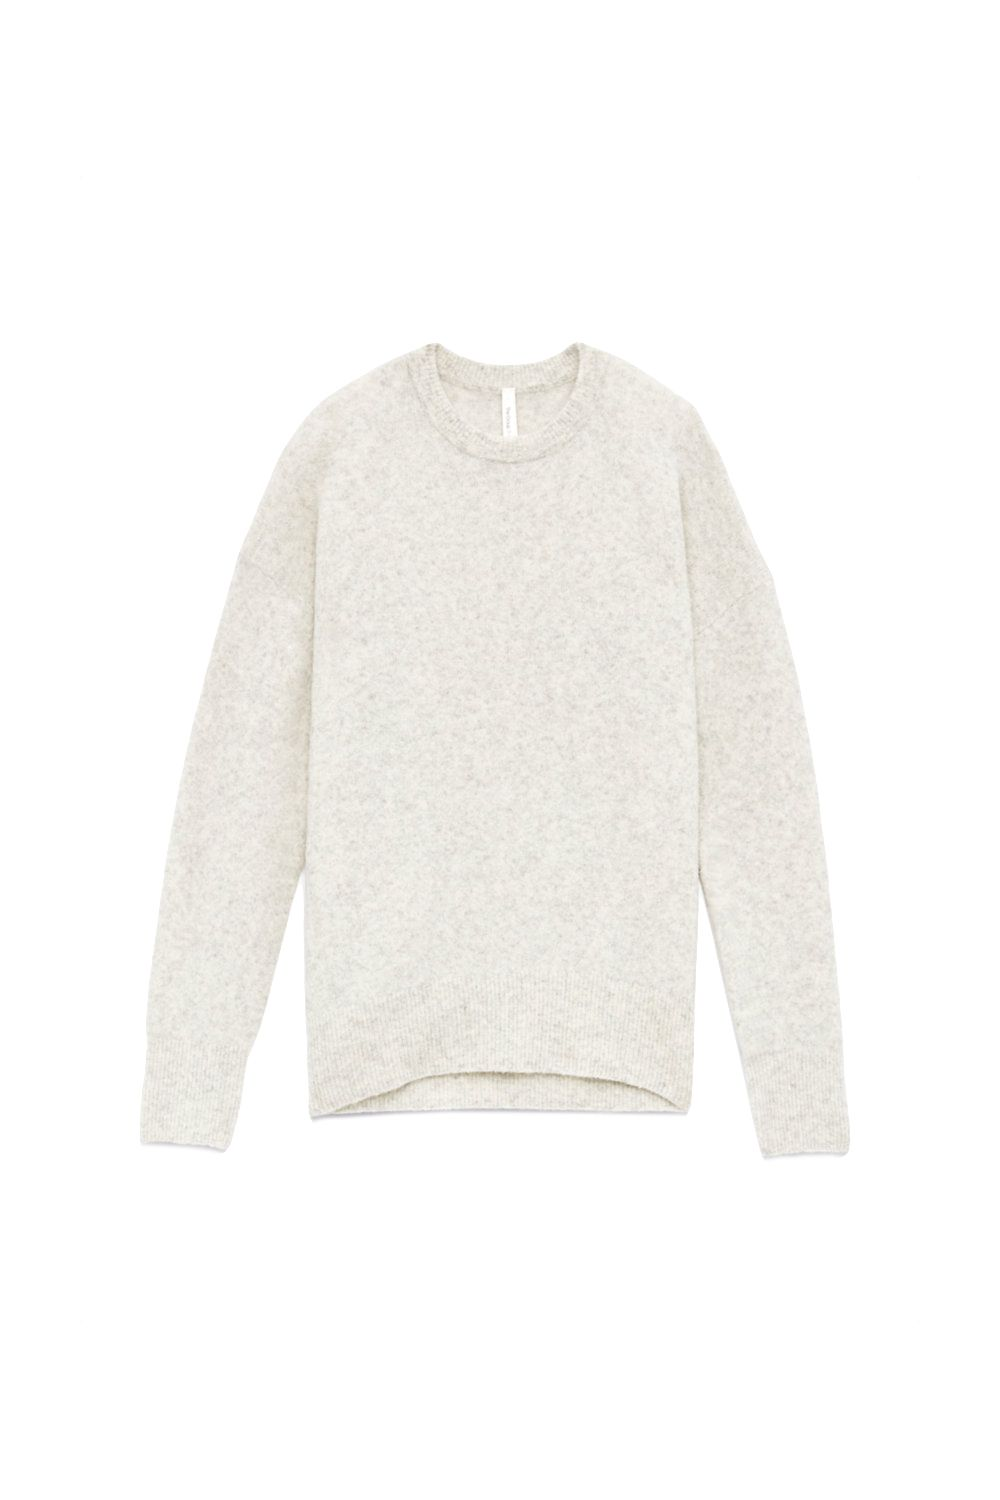 "<p>You know how every season you're like ""I need to find the perfect crew neck sweater that's not weirdly snug in the torso but loose in the arms instead of the other way around?"" This might be it.</p><p><em data-redactor-tag=""em"" data-verified=""redactor"">Aritzia, $110</em></p><p><strong data-redactor-tag=""strong"" data-verified=""redactor"">BUY IT: <span class=""redactor-invisible-space"" data-verified=""redactor"" data-redactor-tag=""span"" data-redactor-class=""redactor-invisible-space""></span><a href=""http://us.aritzia.com/product/thurlow-sweater/64424.html?dwvar_64424_color=1560"" target=""_blank"" data-tracking-id=""recirc-text-link"">aritzia.com</a>.</strong></p>"